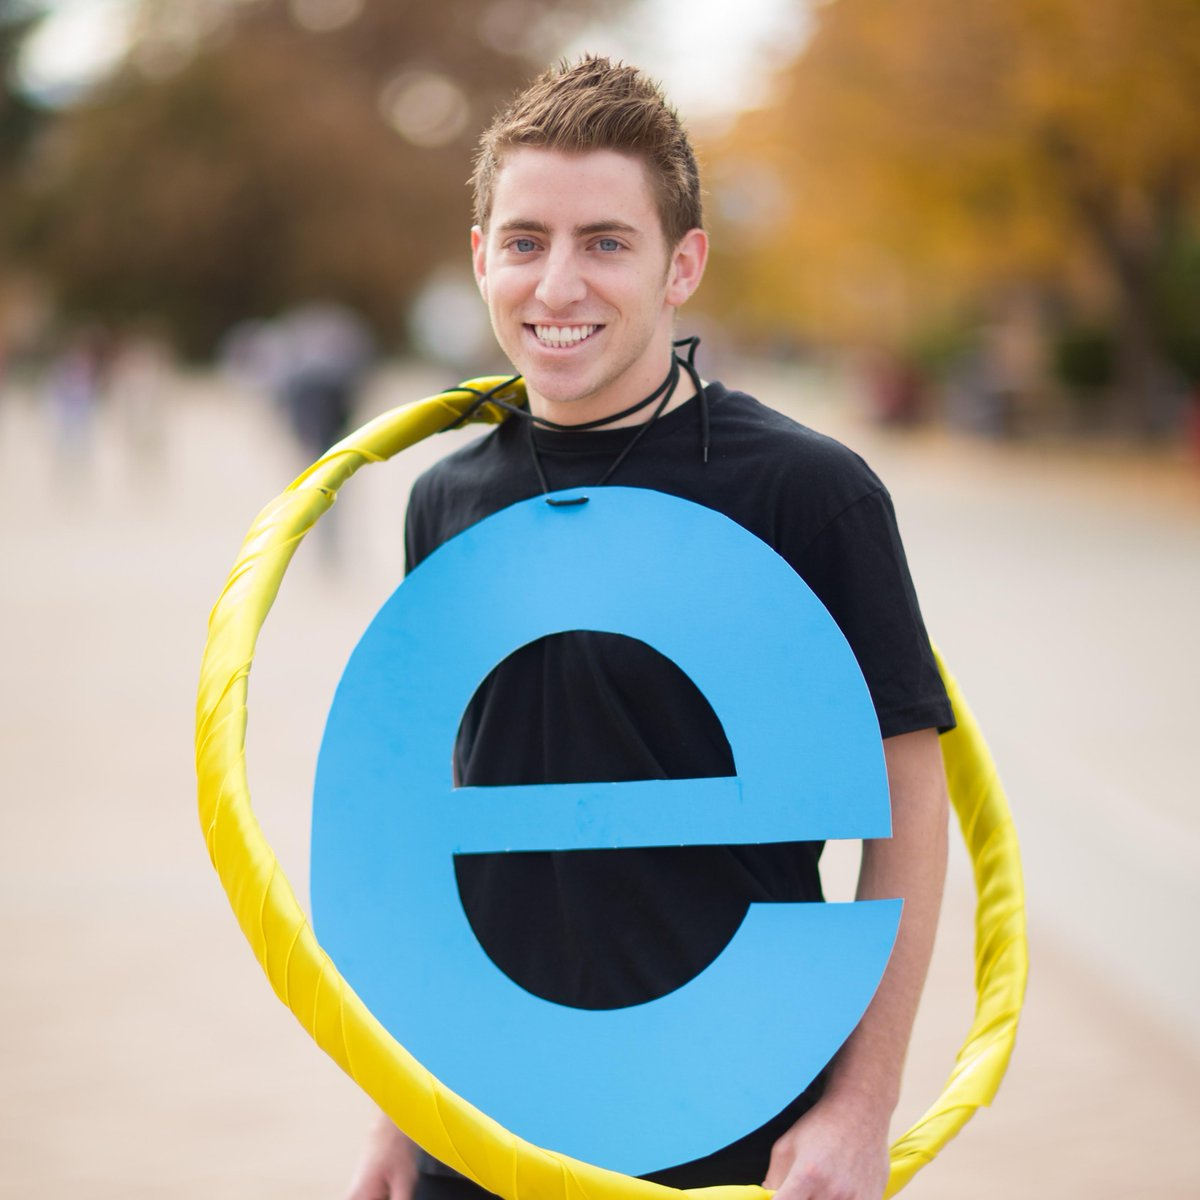 Brilliant RT @MKBHD RT @BYU This guy has been walking around campus very slowly. #BYUHalloween http://t.co/48ytekcOKQ